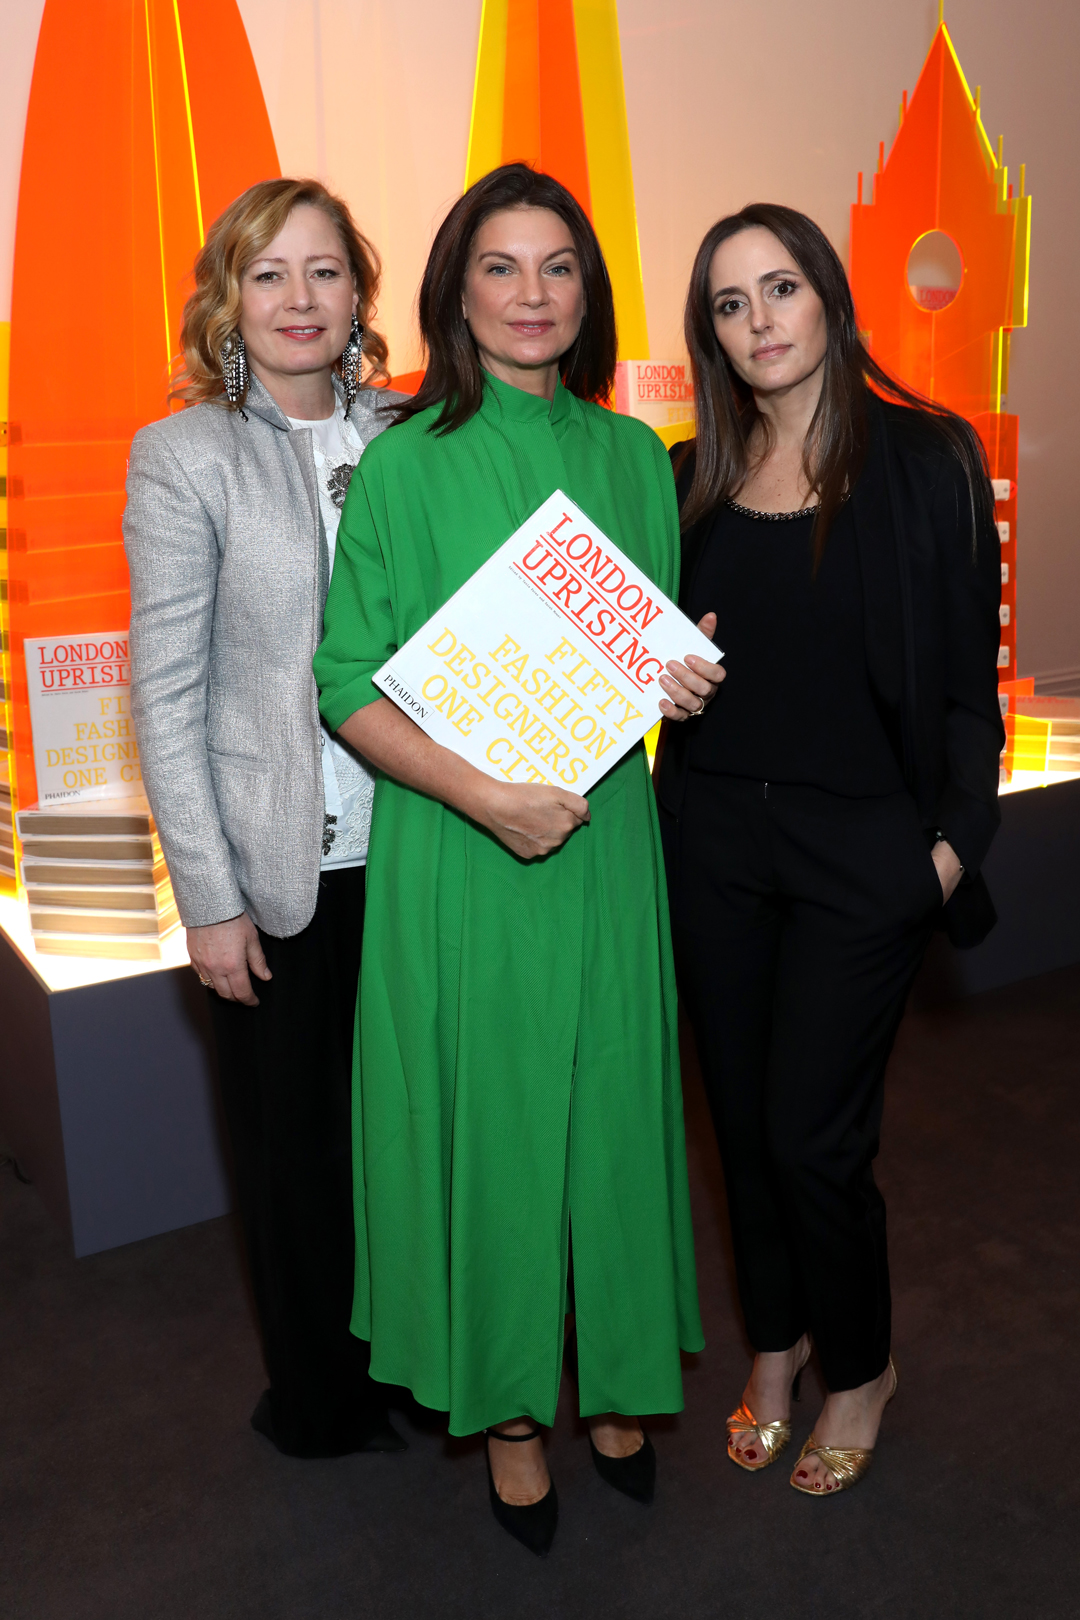 Sarah Mower MBE Natalie Massenet MBE and Tania Fares at Sotheby's last night